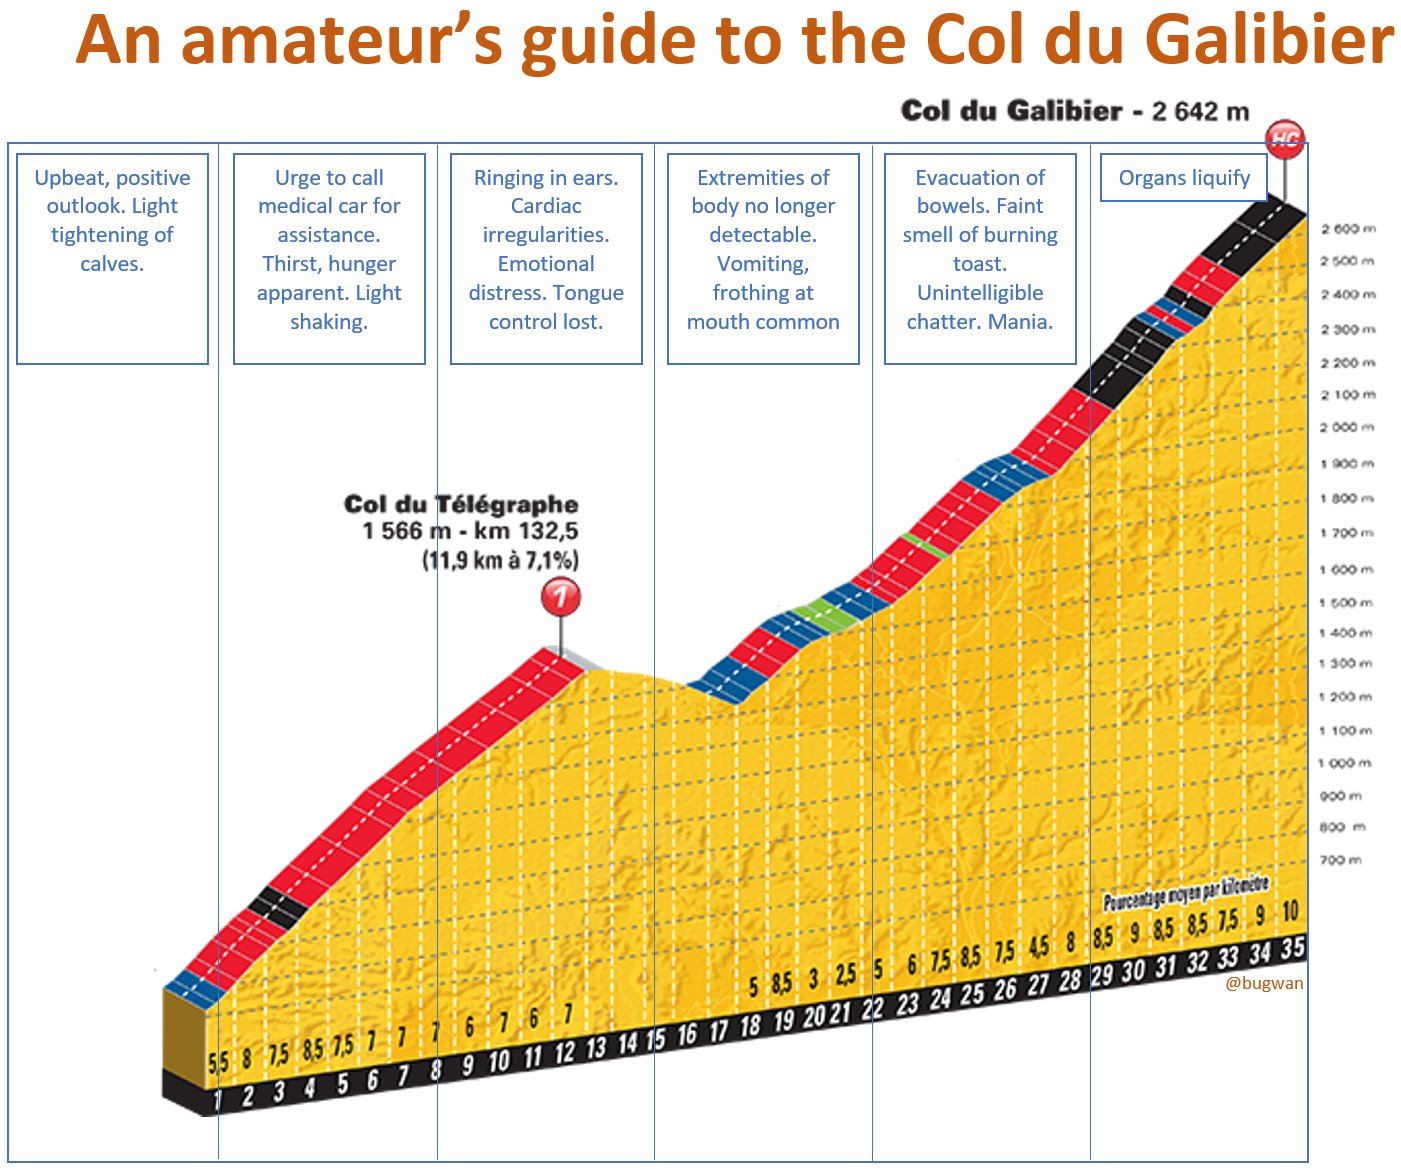 An amateur cyclist's guide to handling pain on the Galibier   #sbstdf #couchpeloton #TDF https://t.co/EBdufhdclm